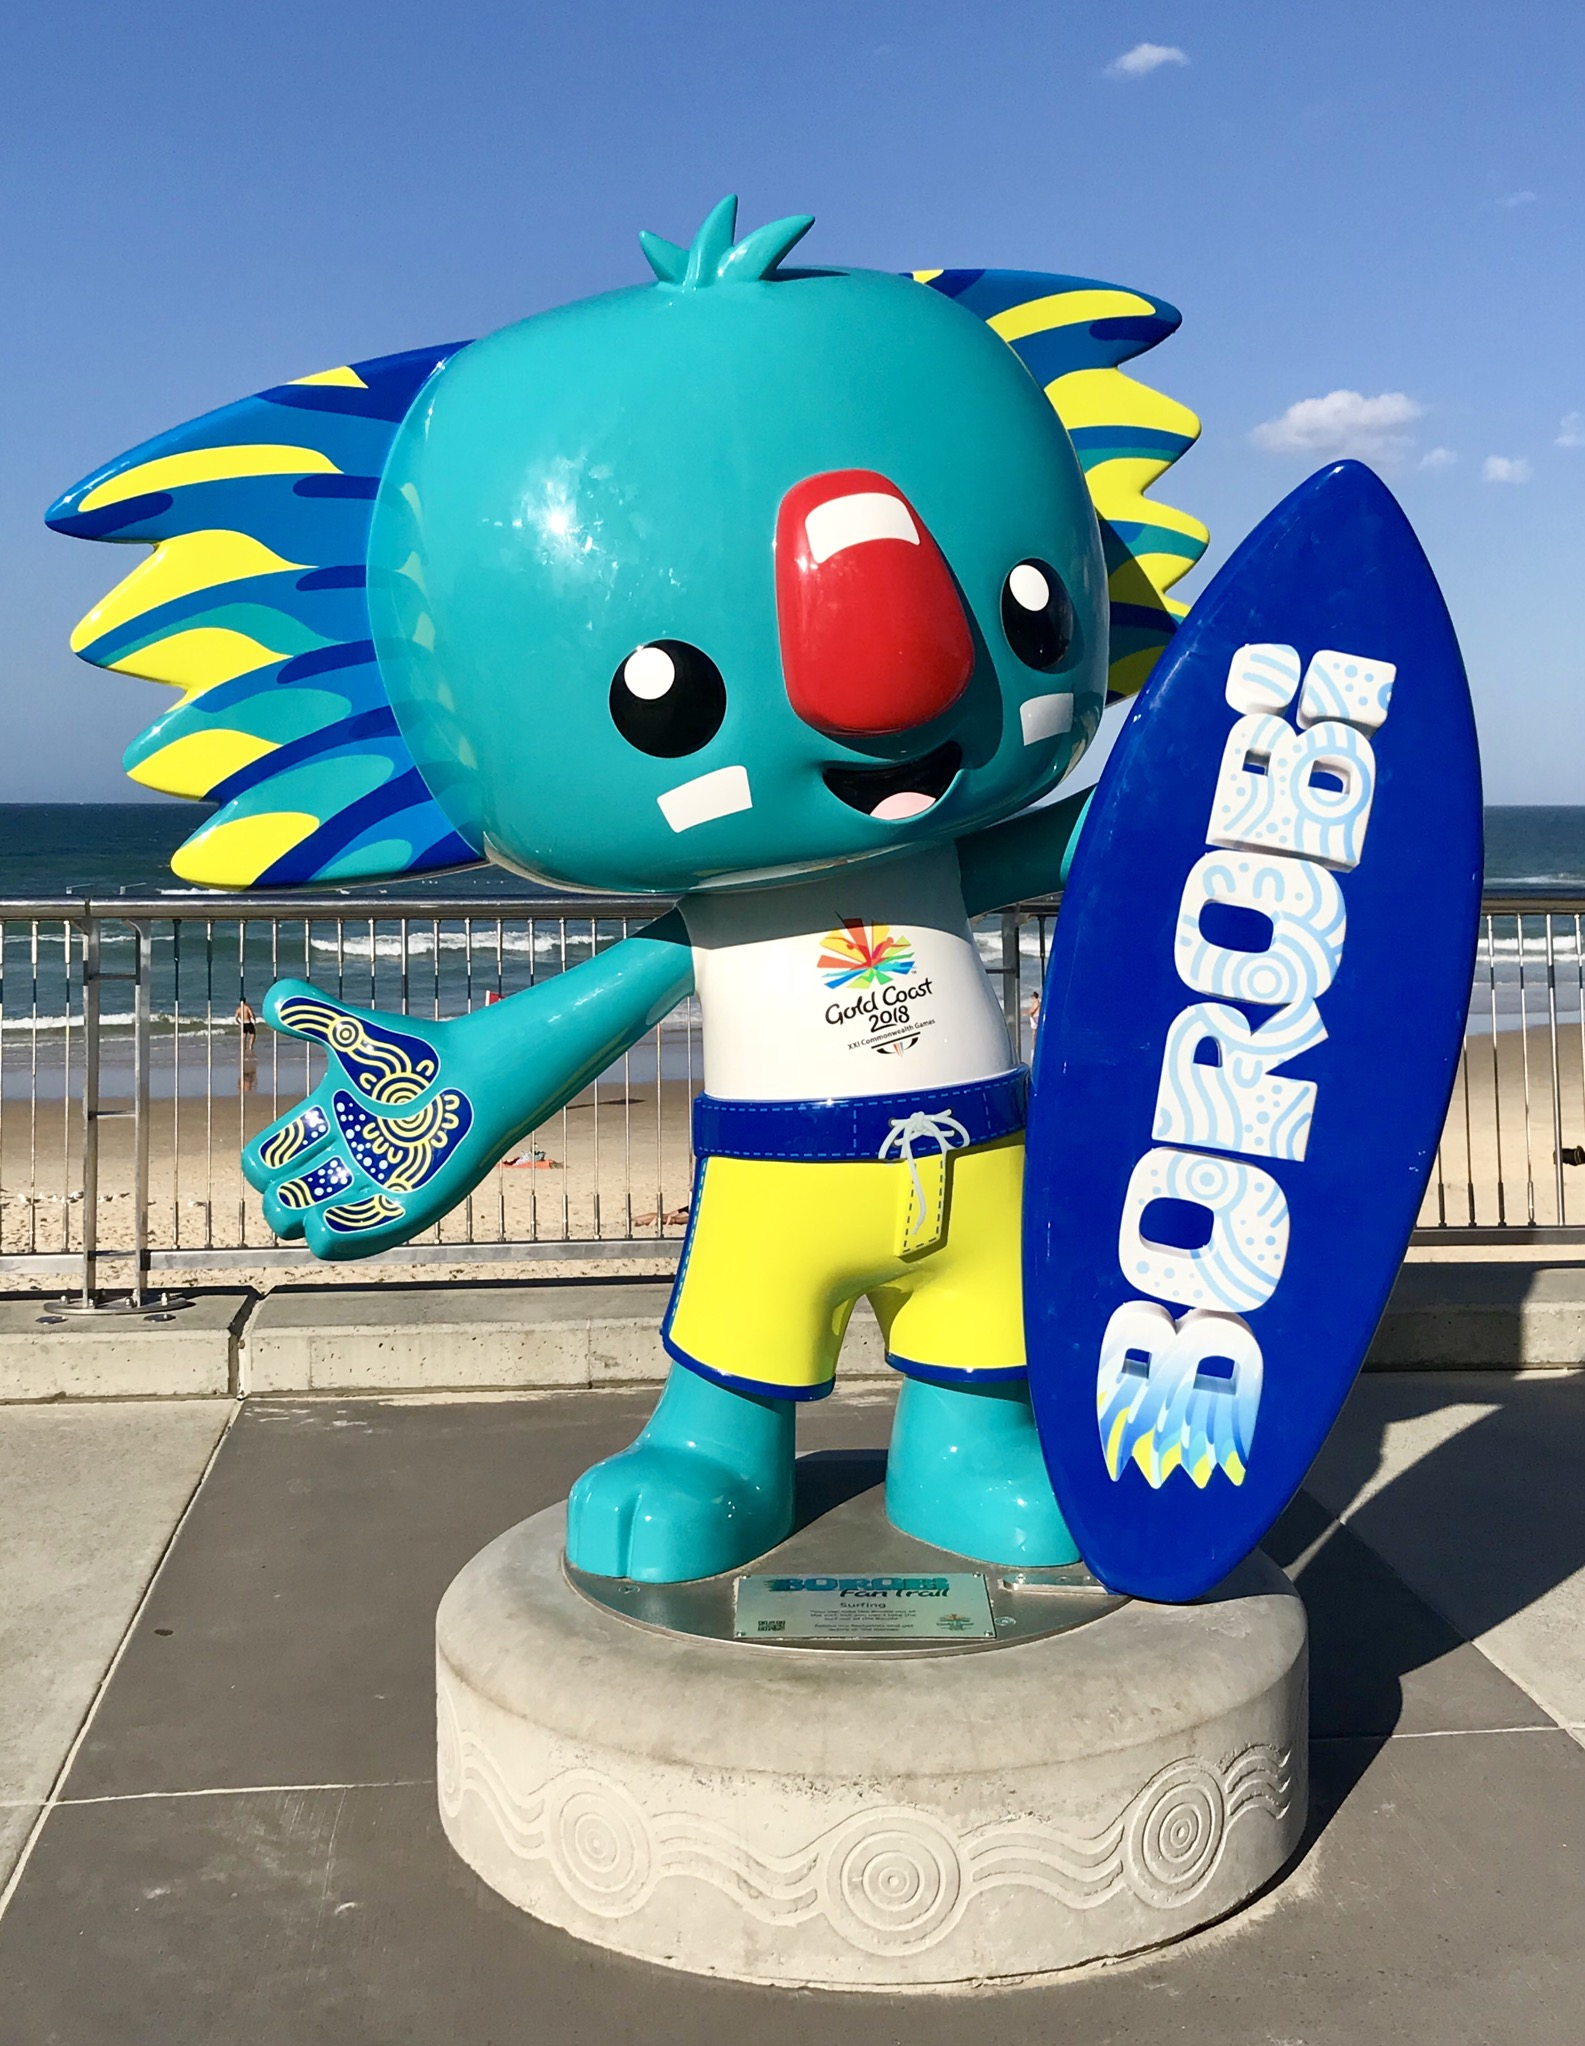 Commonwealth games 2018 mascot pictures